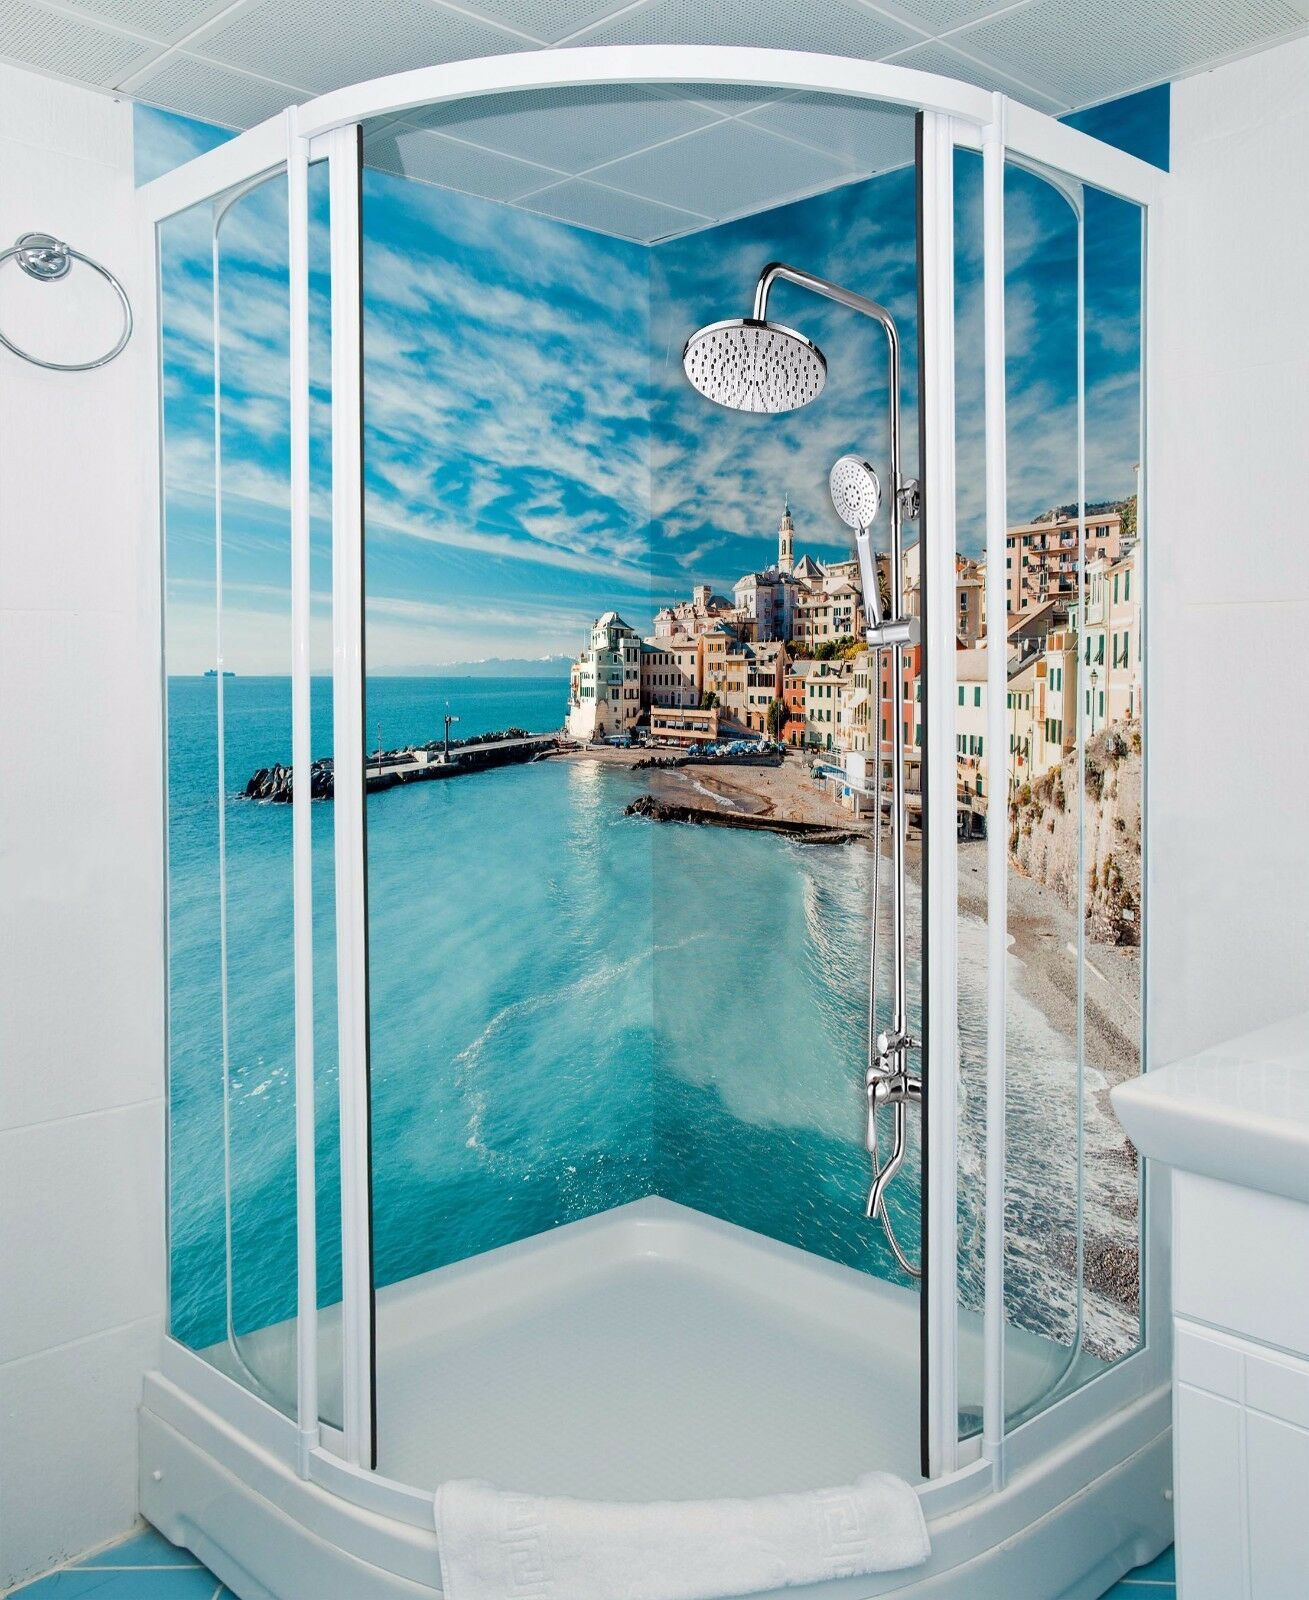 Wallpaper Murals For Bathrooms 3d Coastal 758 Bathroom Print Decal Wall Deco Aj Wallpaper Au